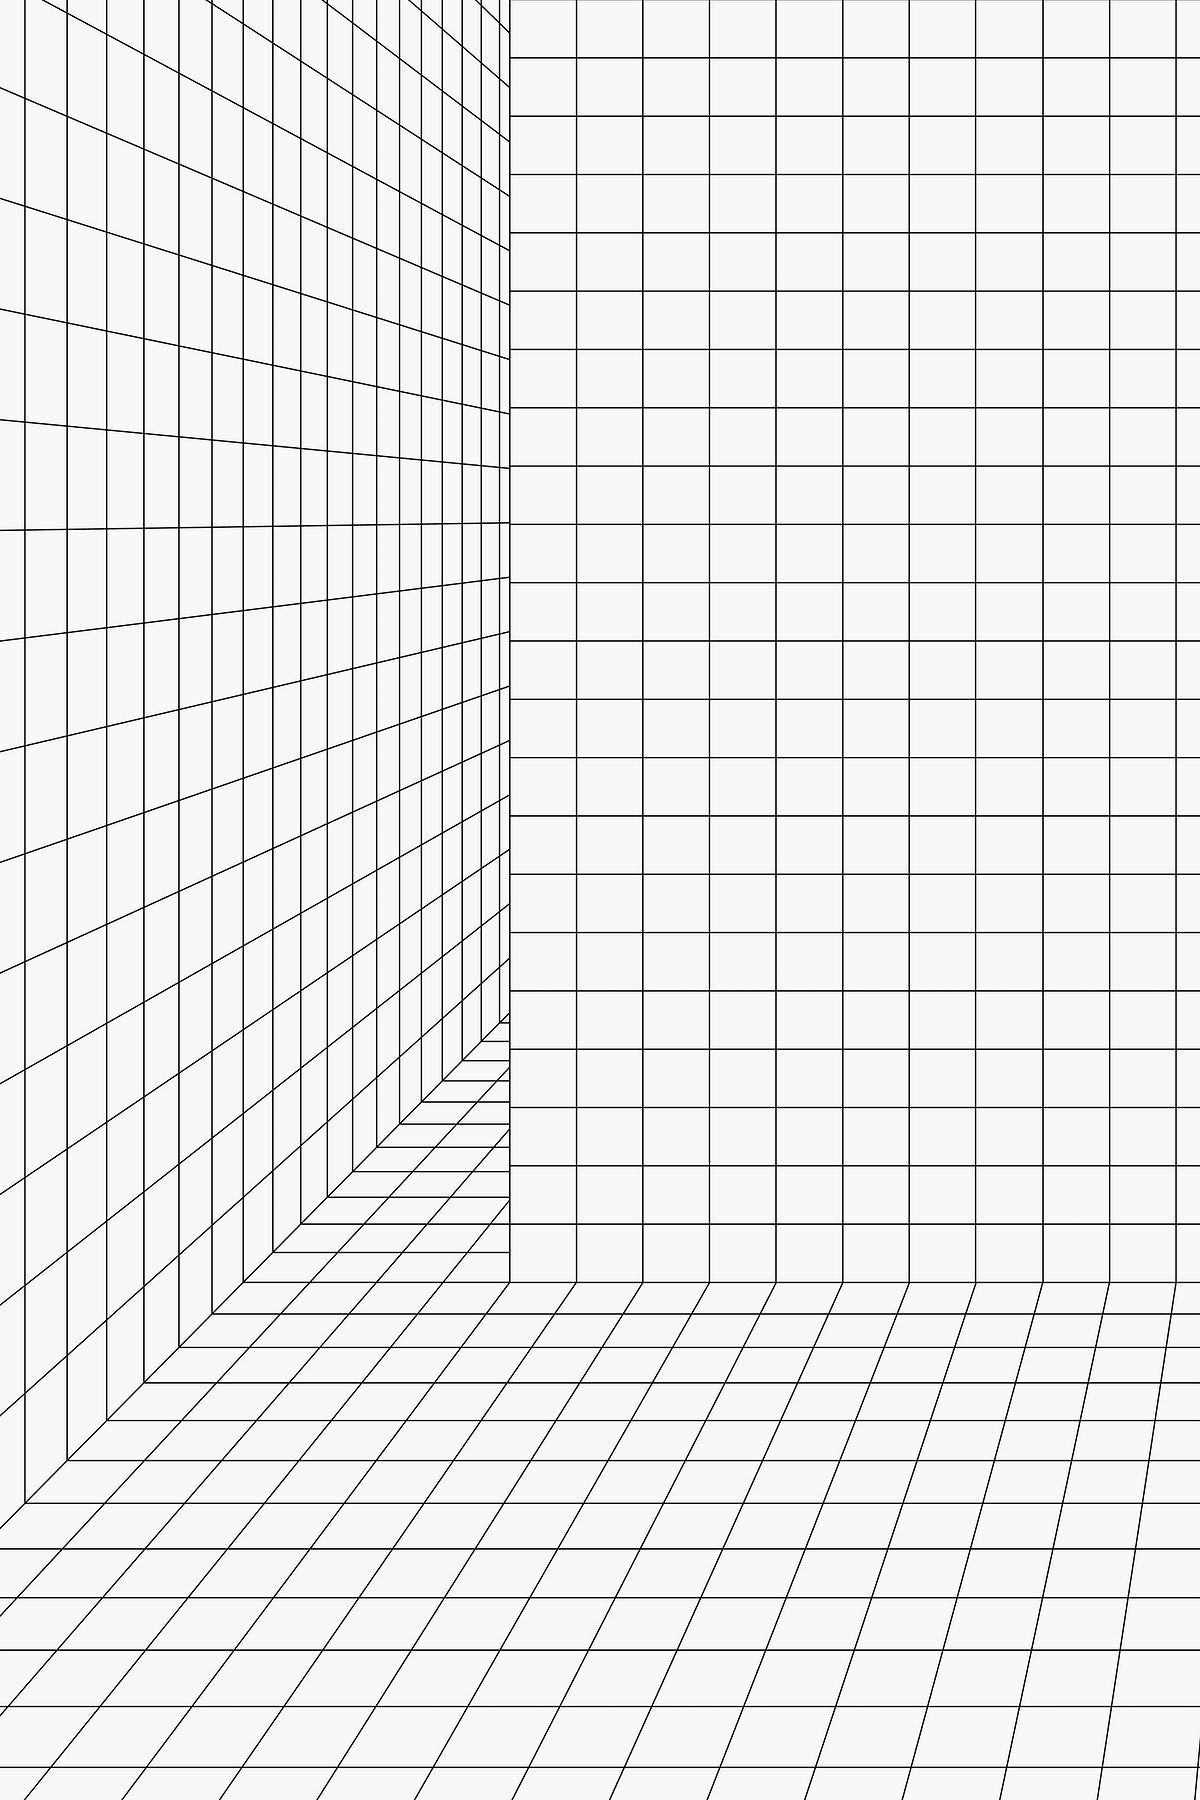 3d Grid Wireframe Grid Room Background Design Element Free Image By Rawpixel Com Aew In 2021 Background Design Design Element Wireframe